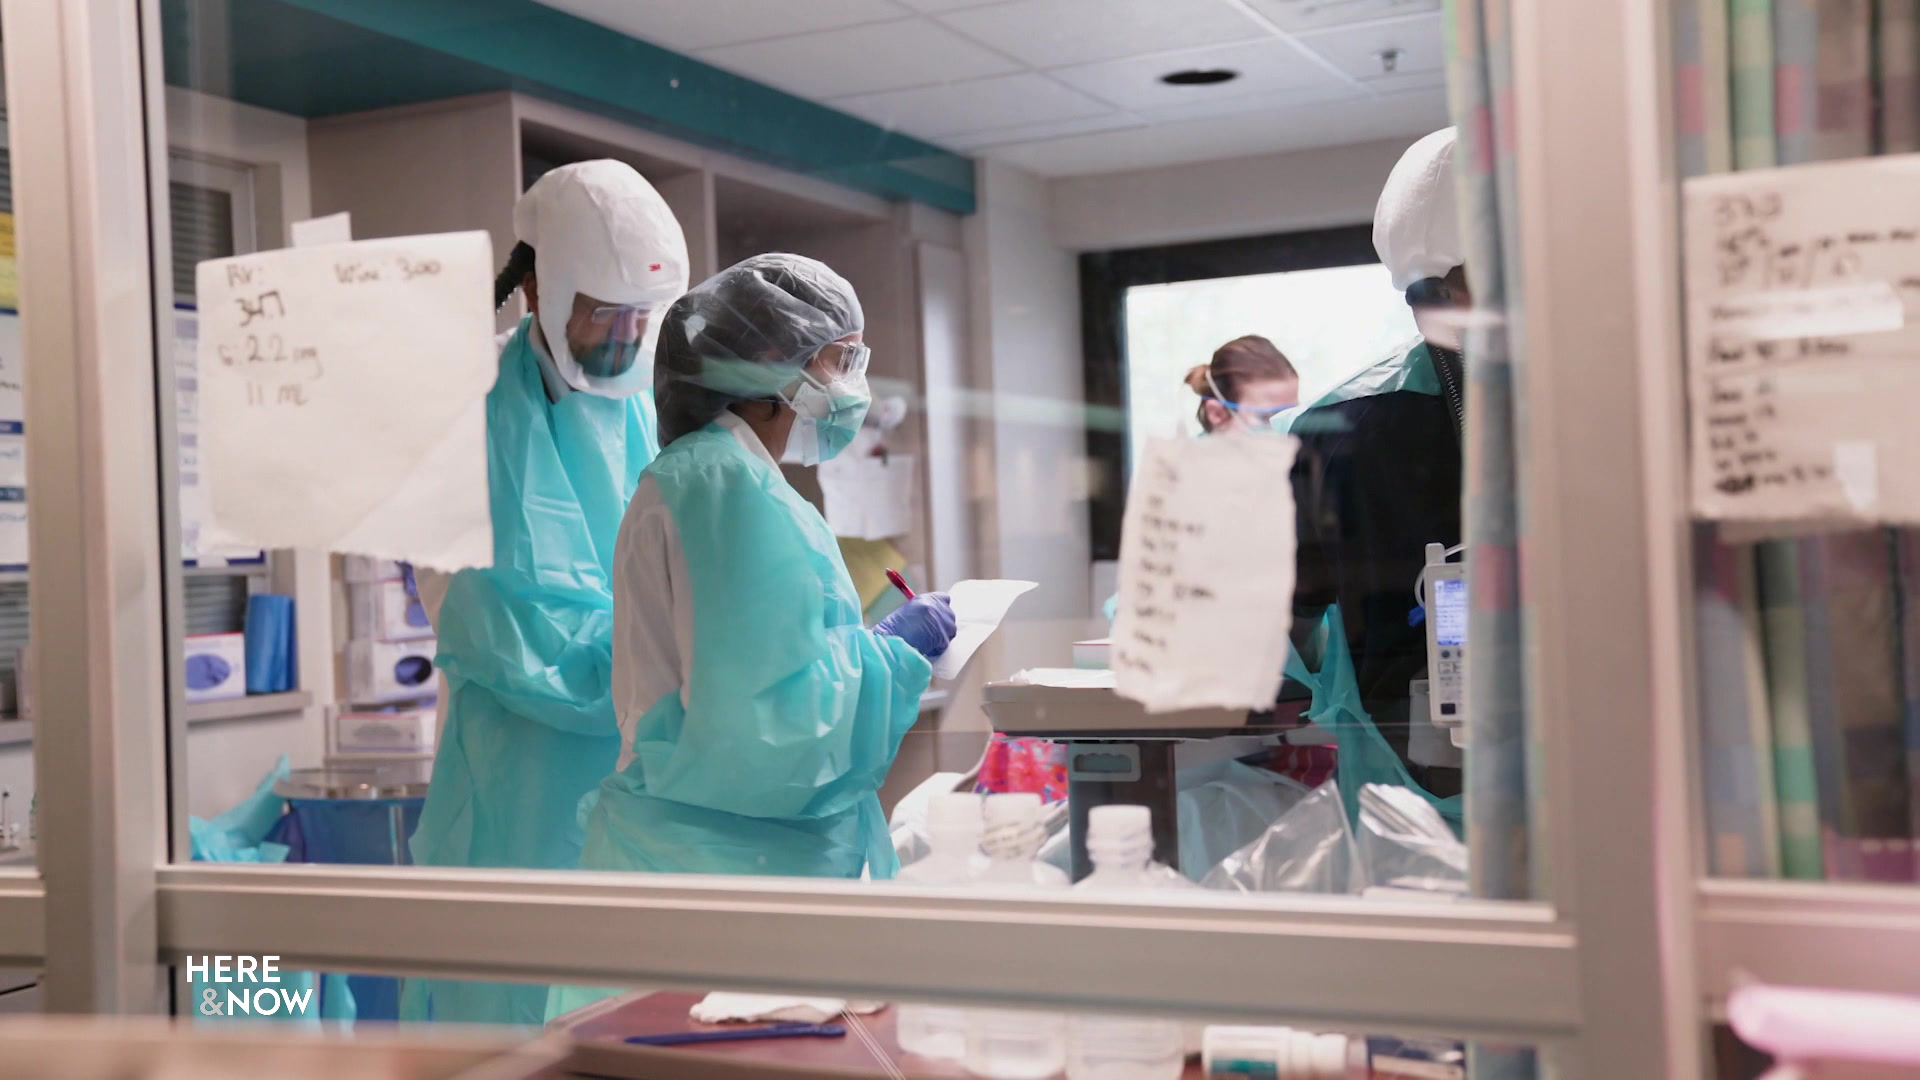 Hospital staff wearing personal protective equipment in an ICU room.